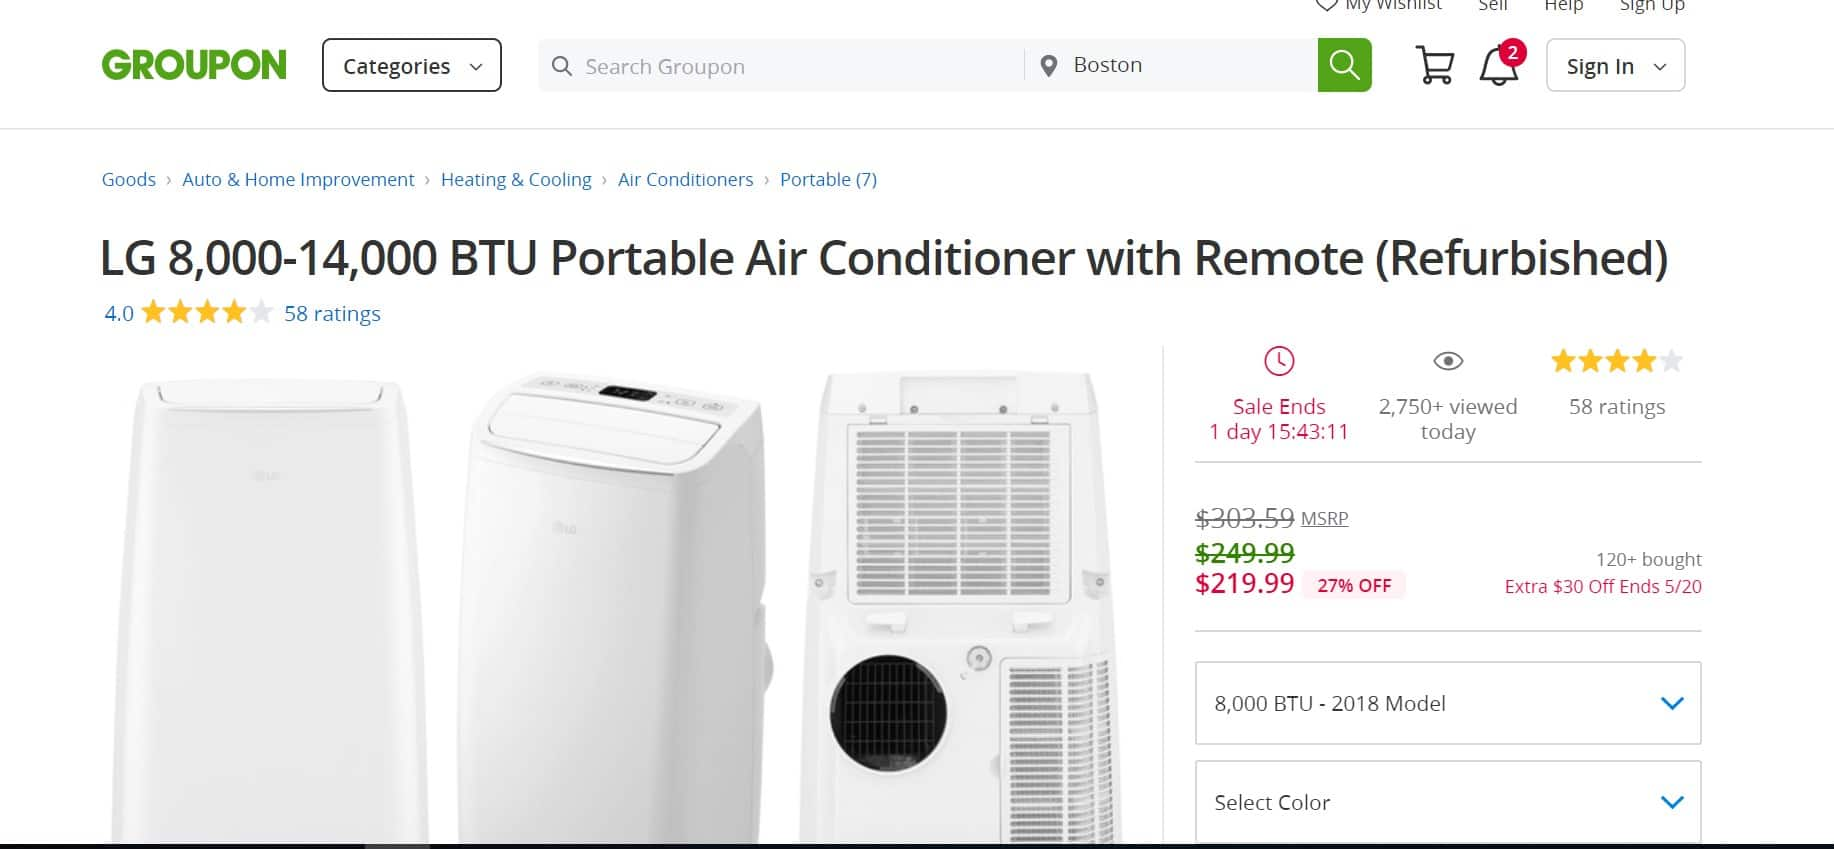 LG 8,000-14,000 BTU Portable Air Conditioner with Remote (Refurbished) $219.99